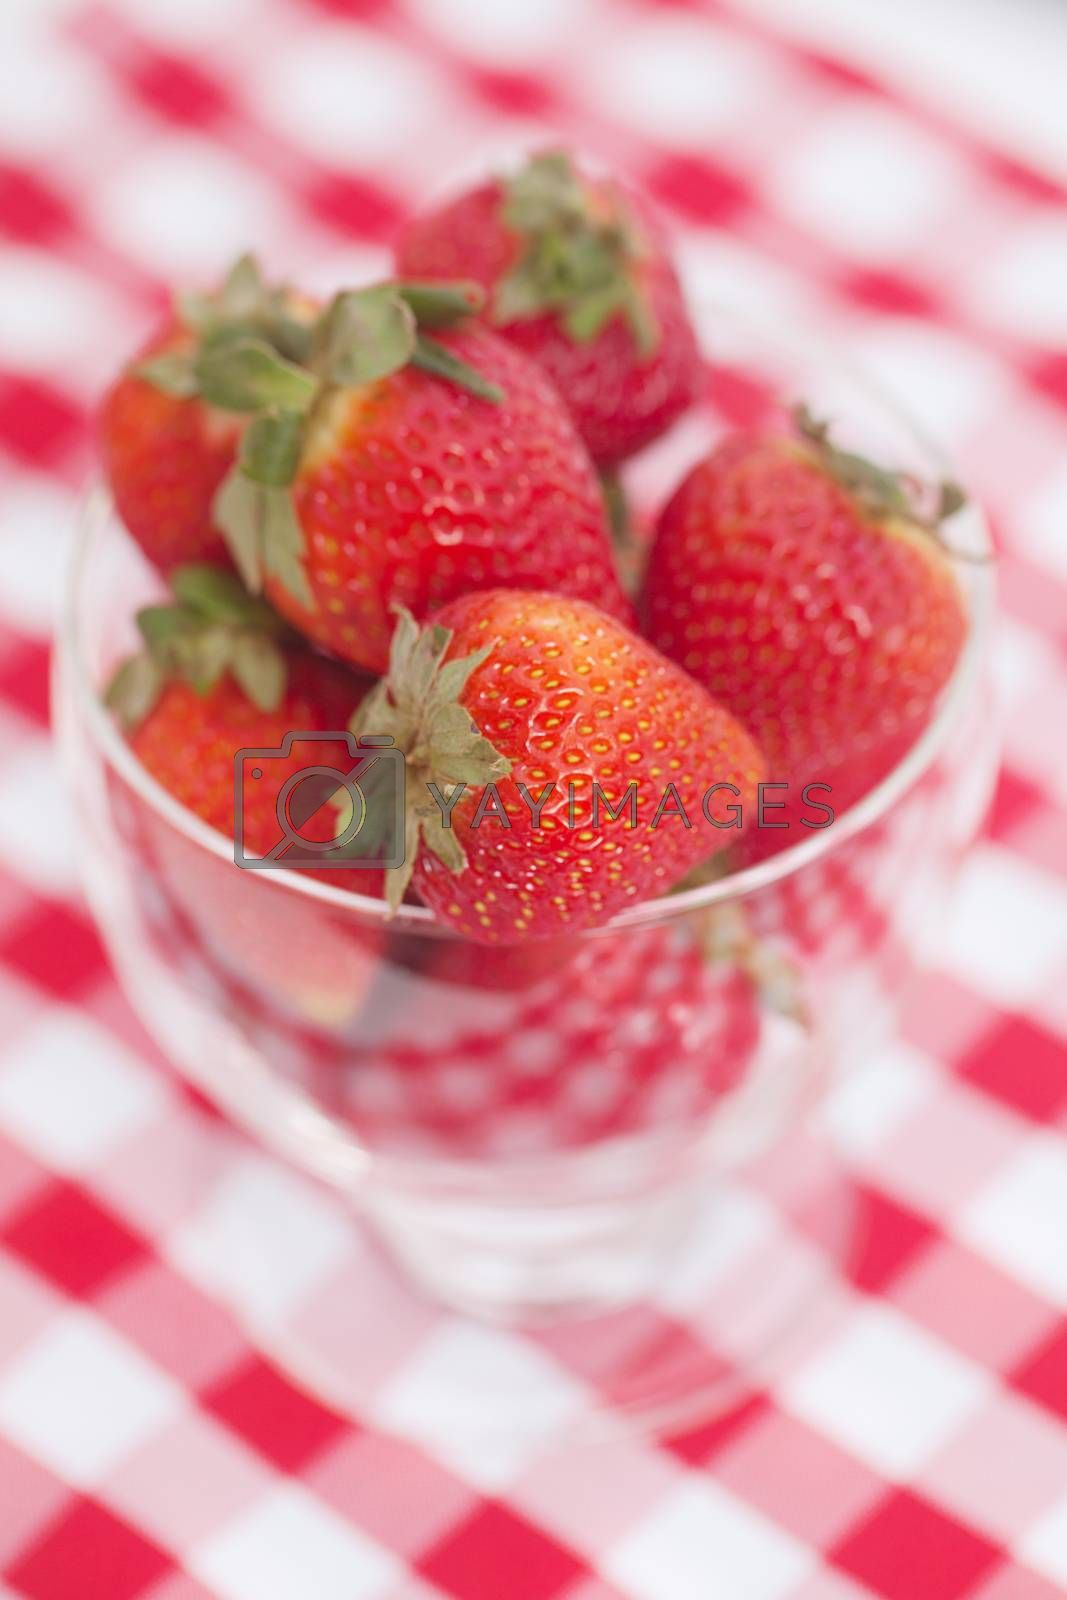 strawberry in a glass bowl on checkered fabric